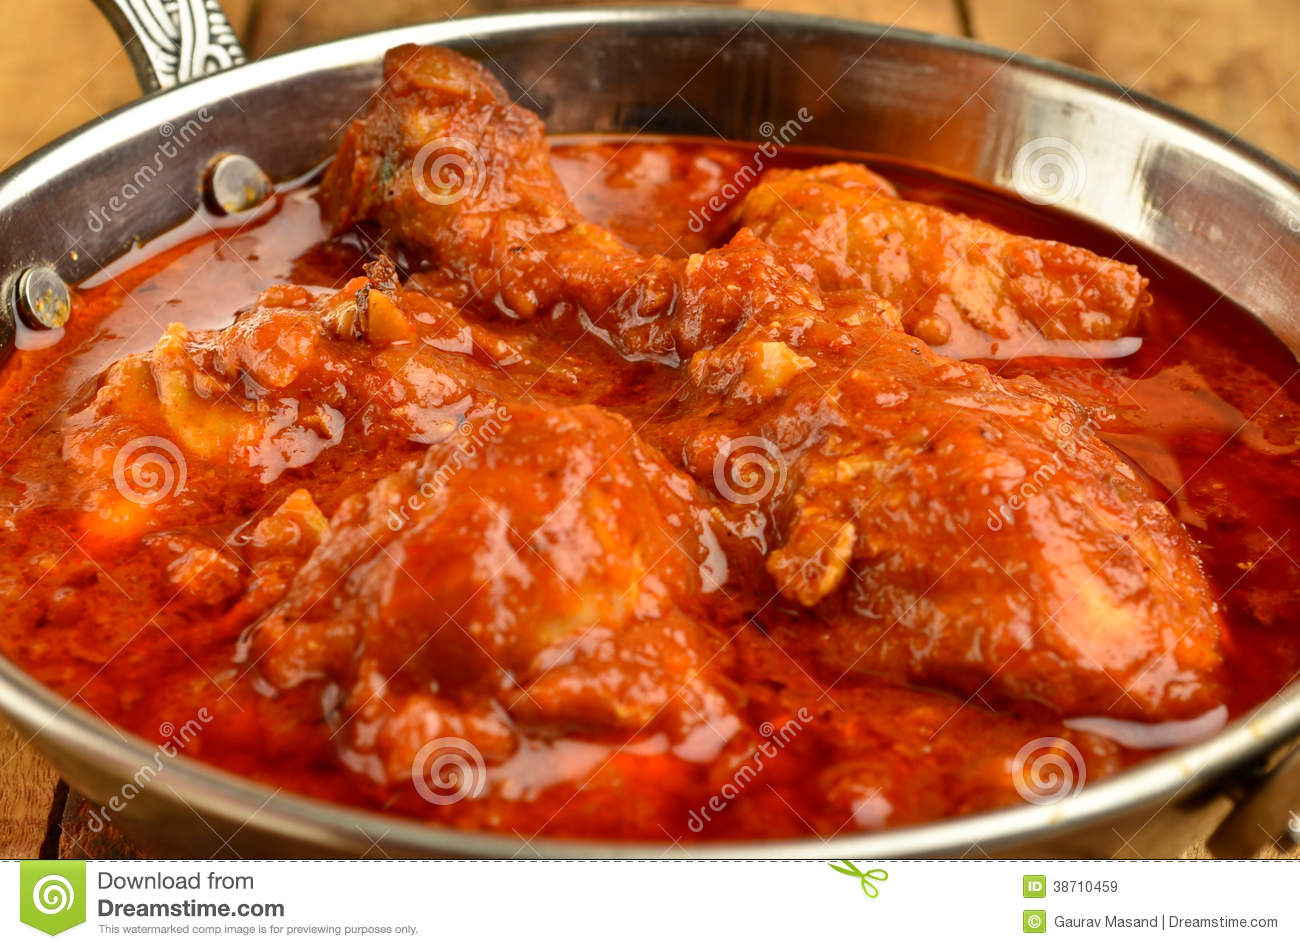 Chicken Curry Royalty Free Stock Images - Image: 38710459 - photo#33